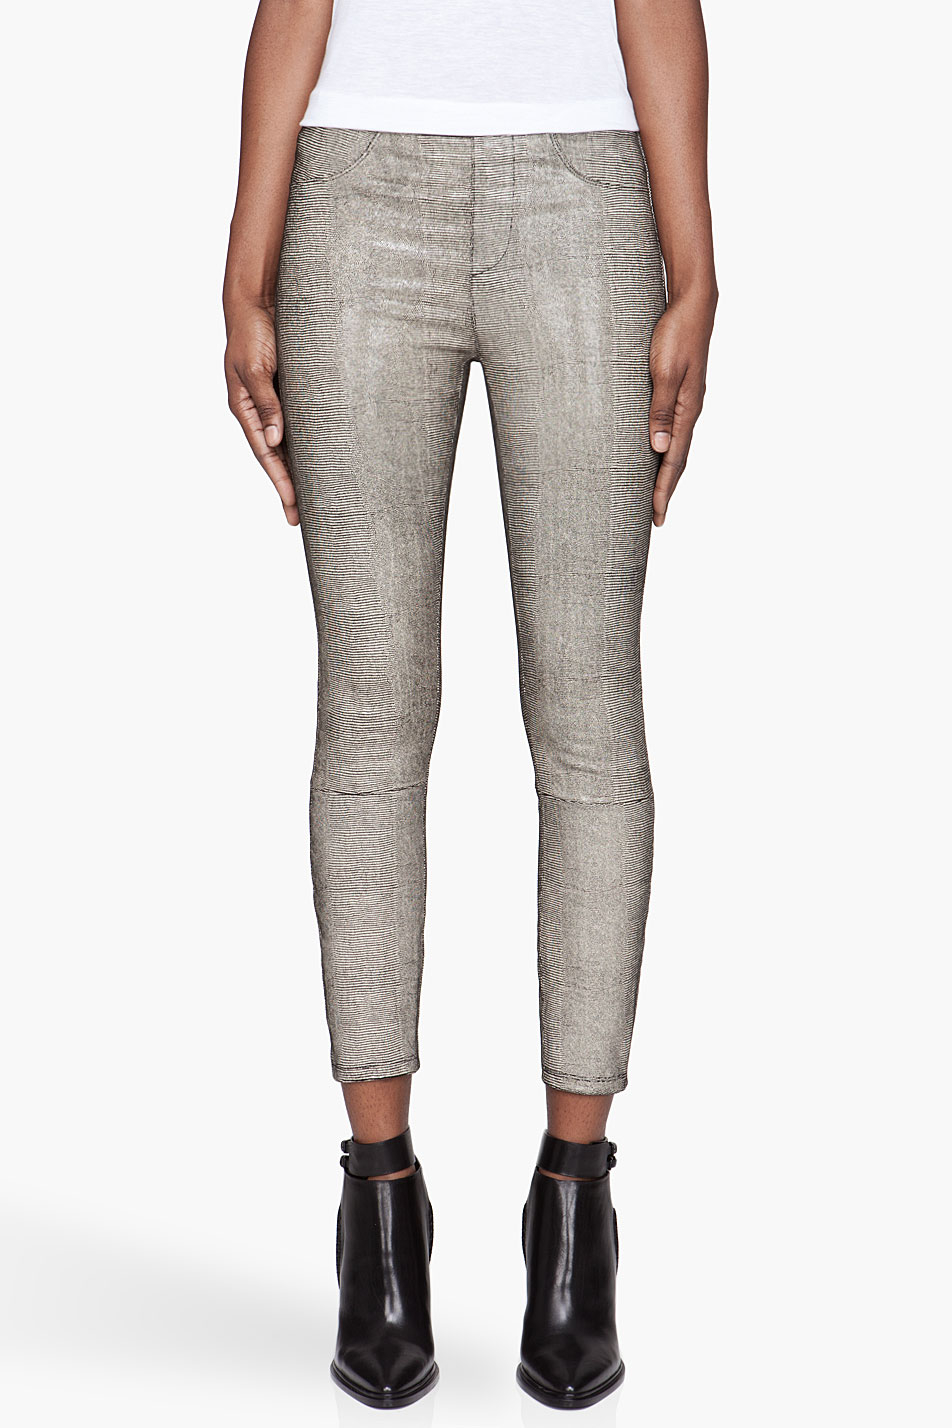 Helmut lang Beige and Black Rift Stretch Leather Leggings in ...